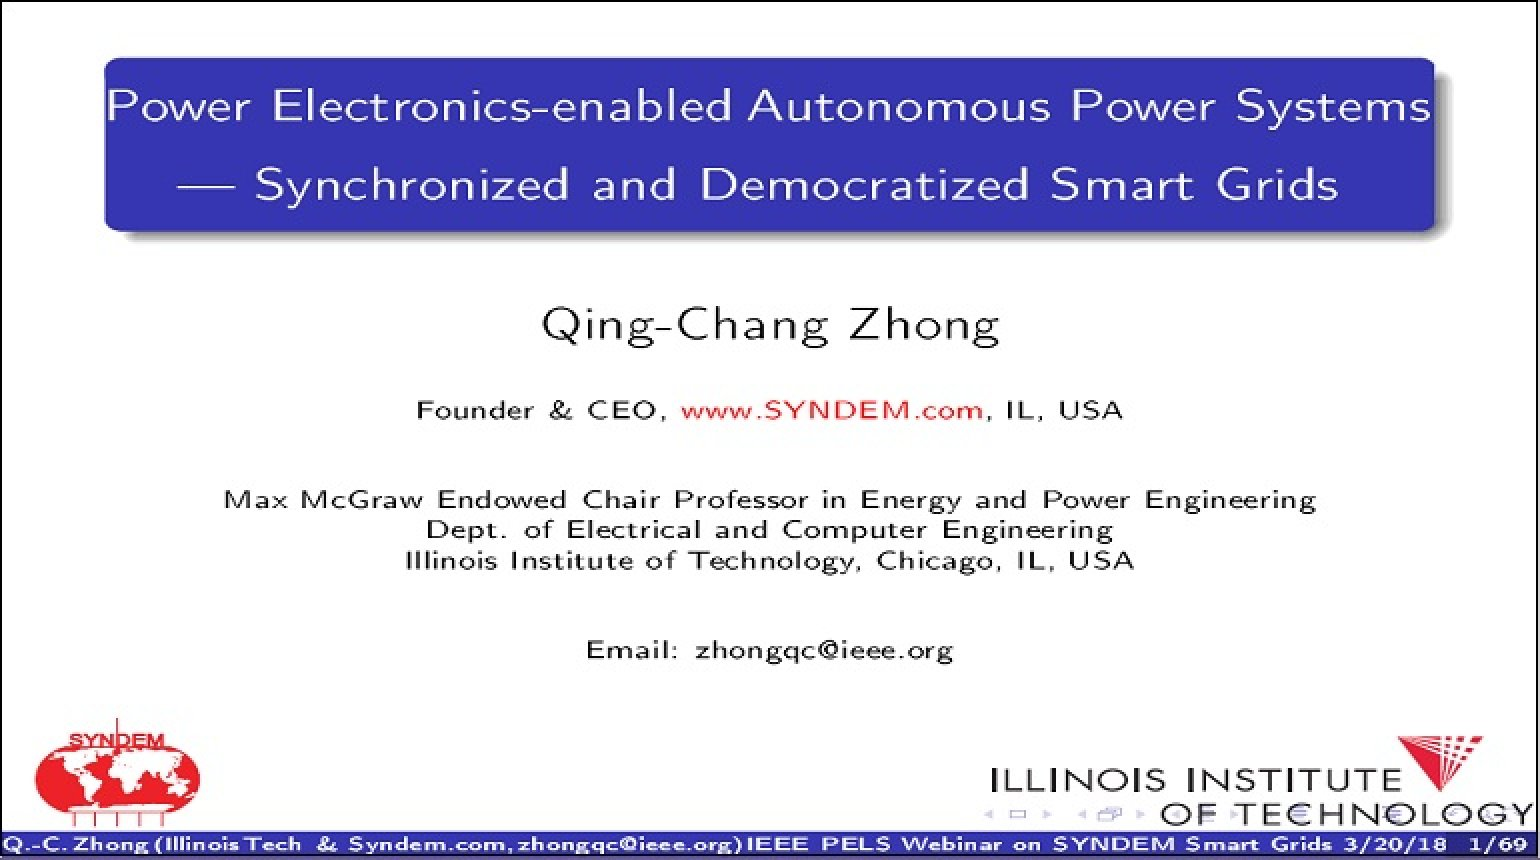 Power Electronics-Enabled Autonomous Power Systems - Synchronized and Democratized (SYNDEM) Smart Grids Video